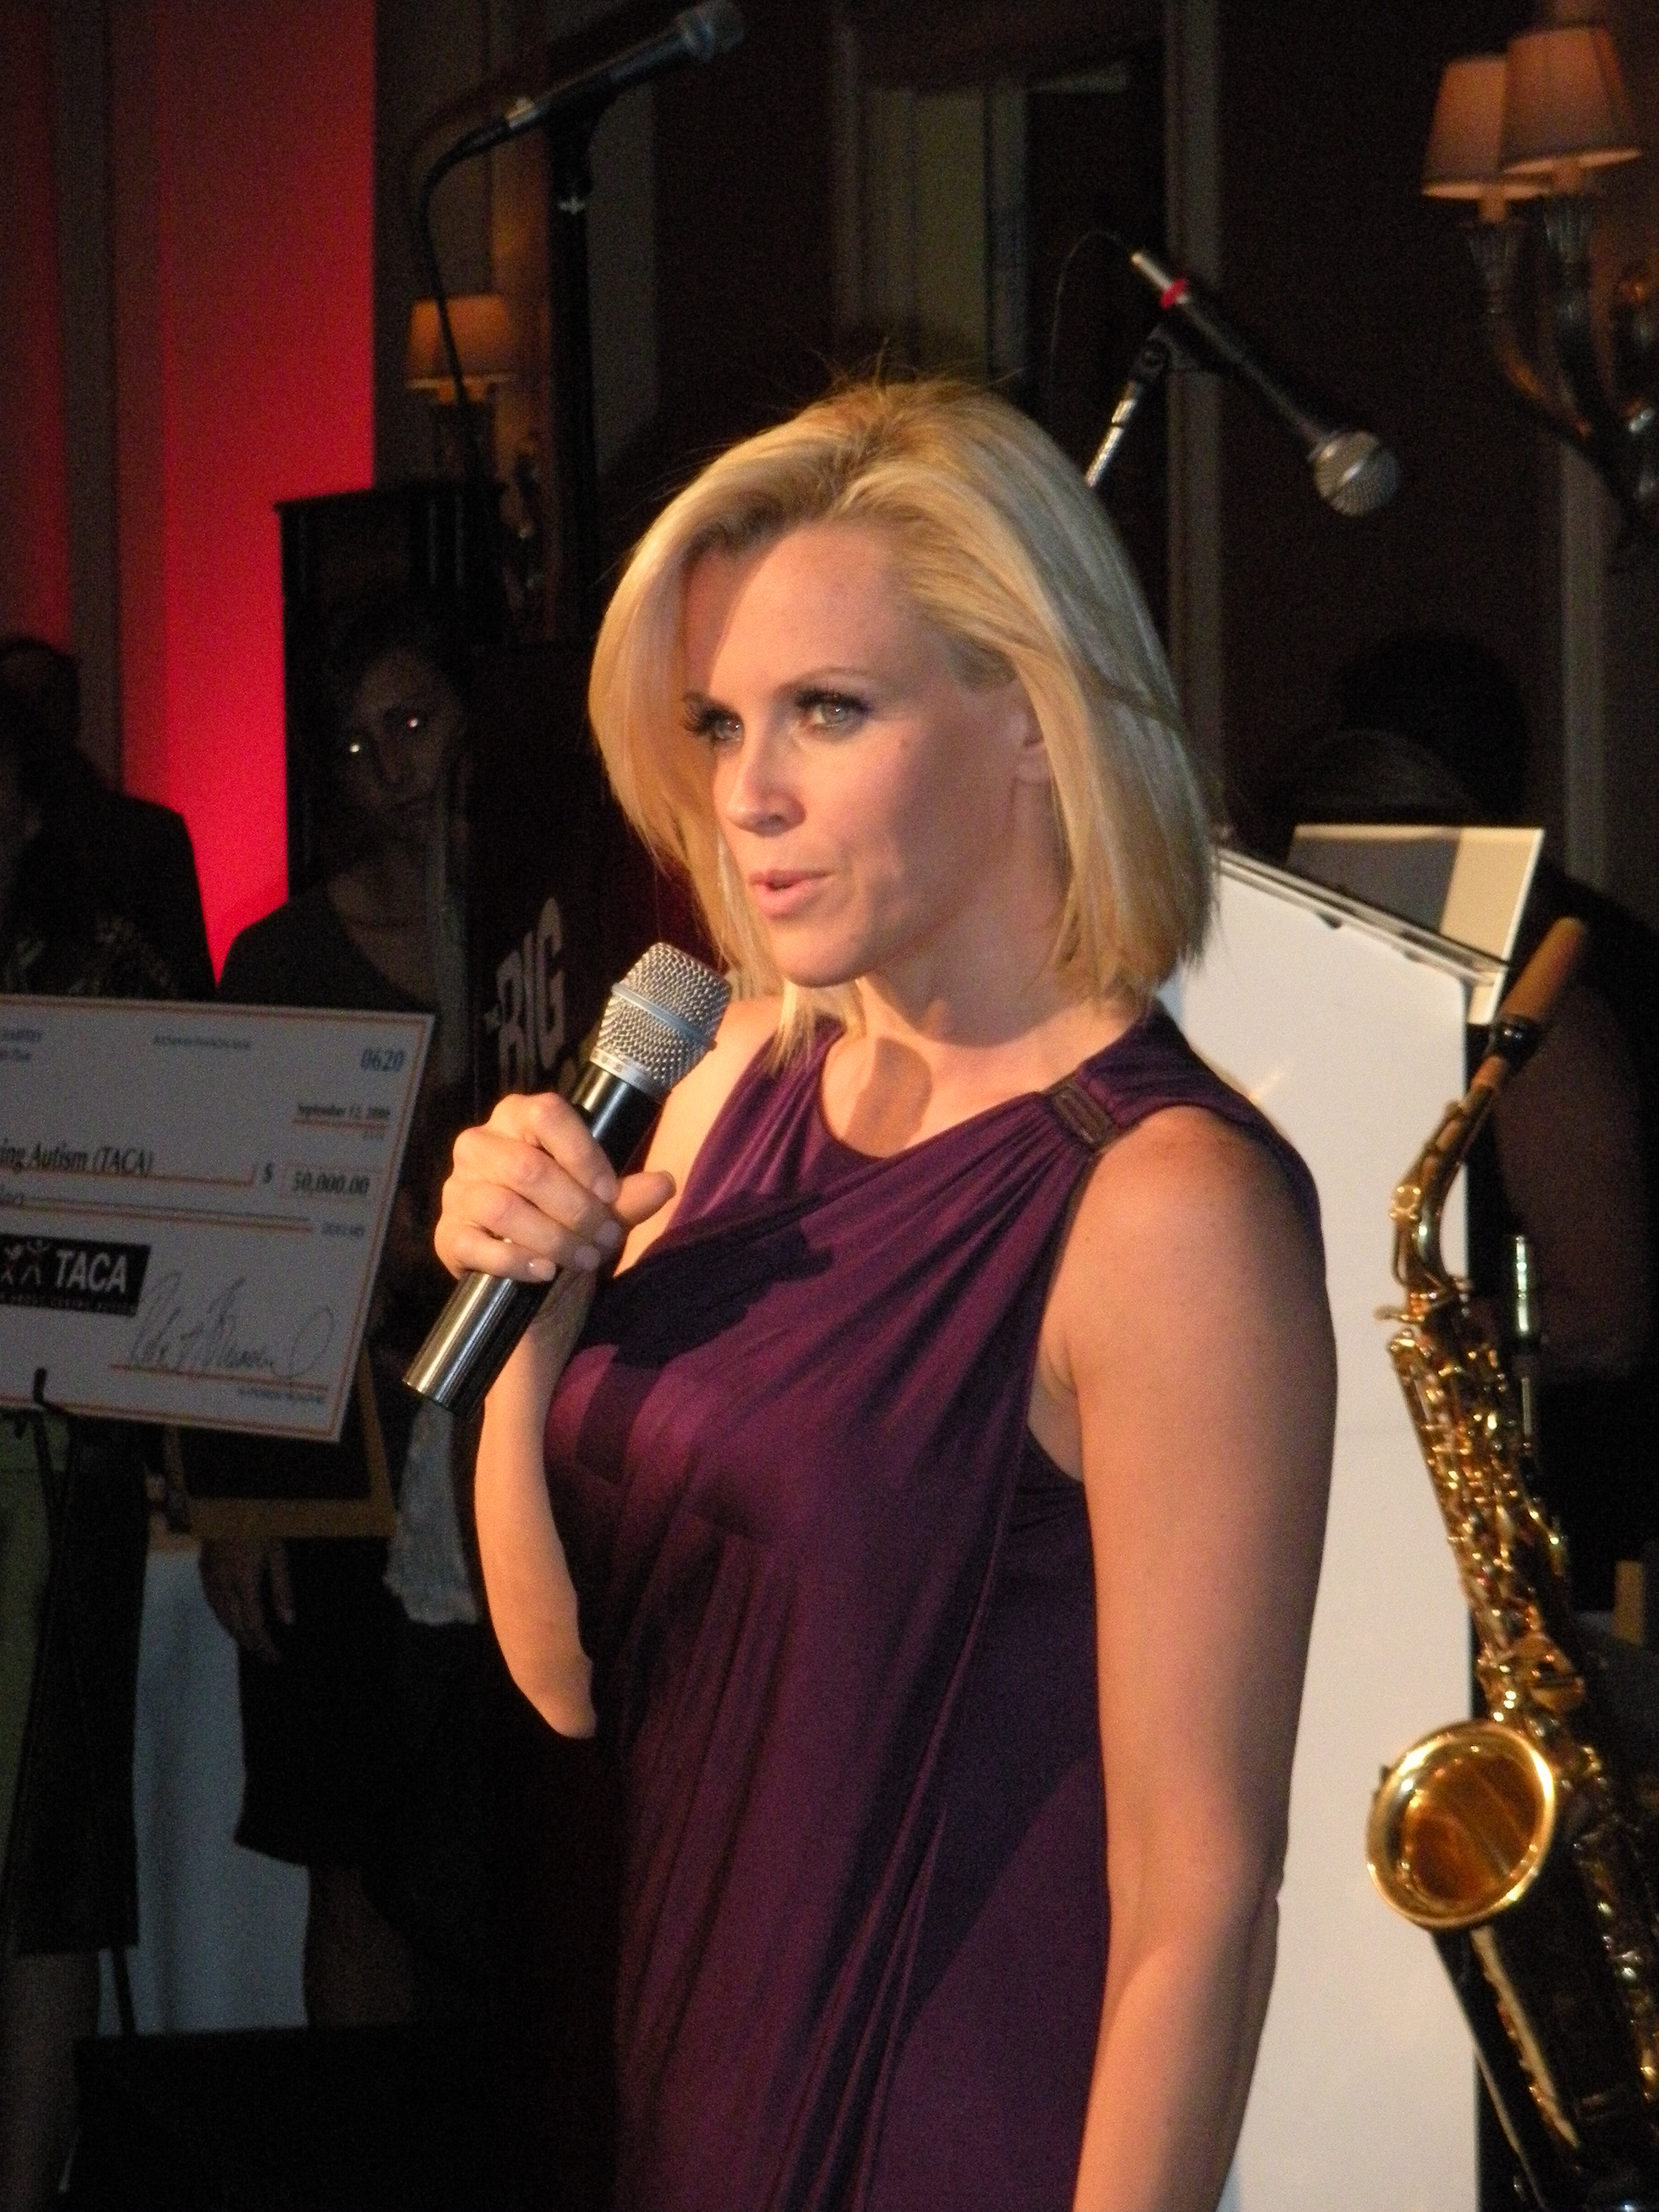 Description Jenny McCarthy Addresses Audience.jpg